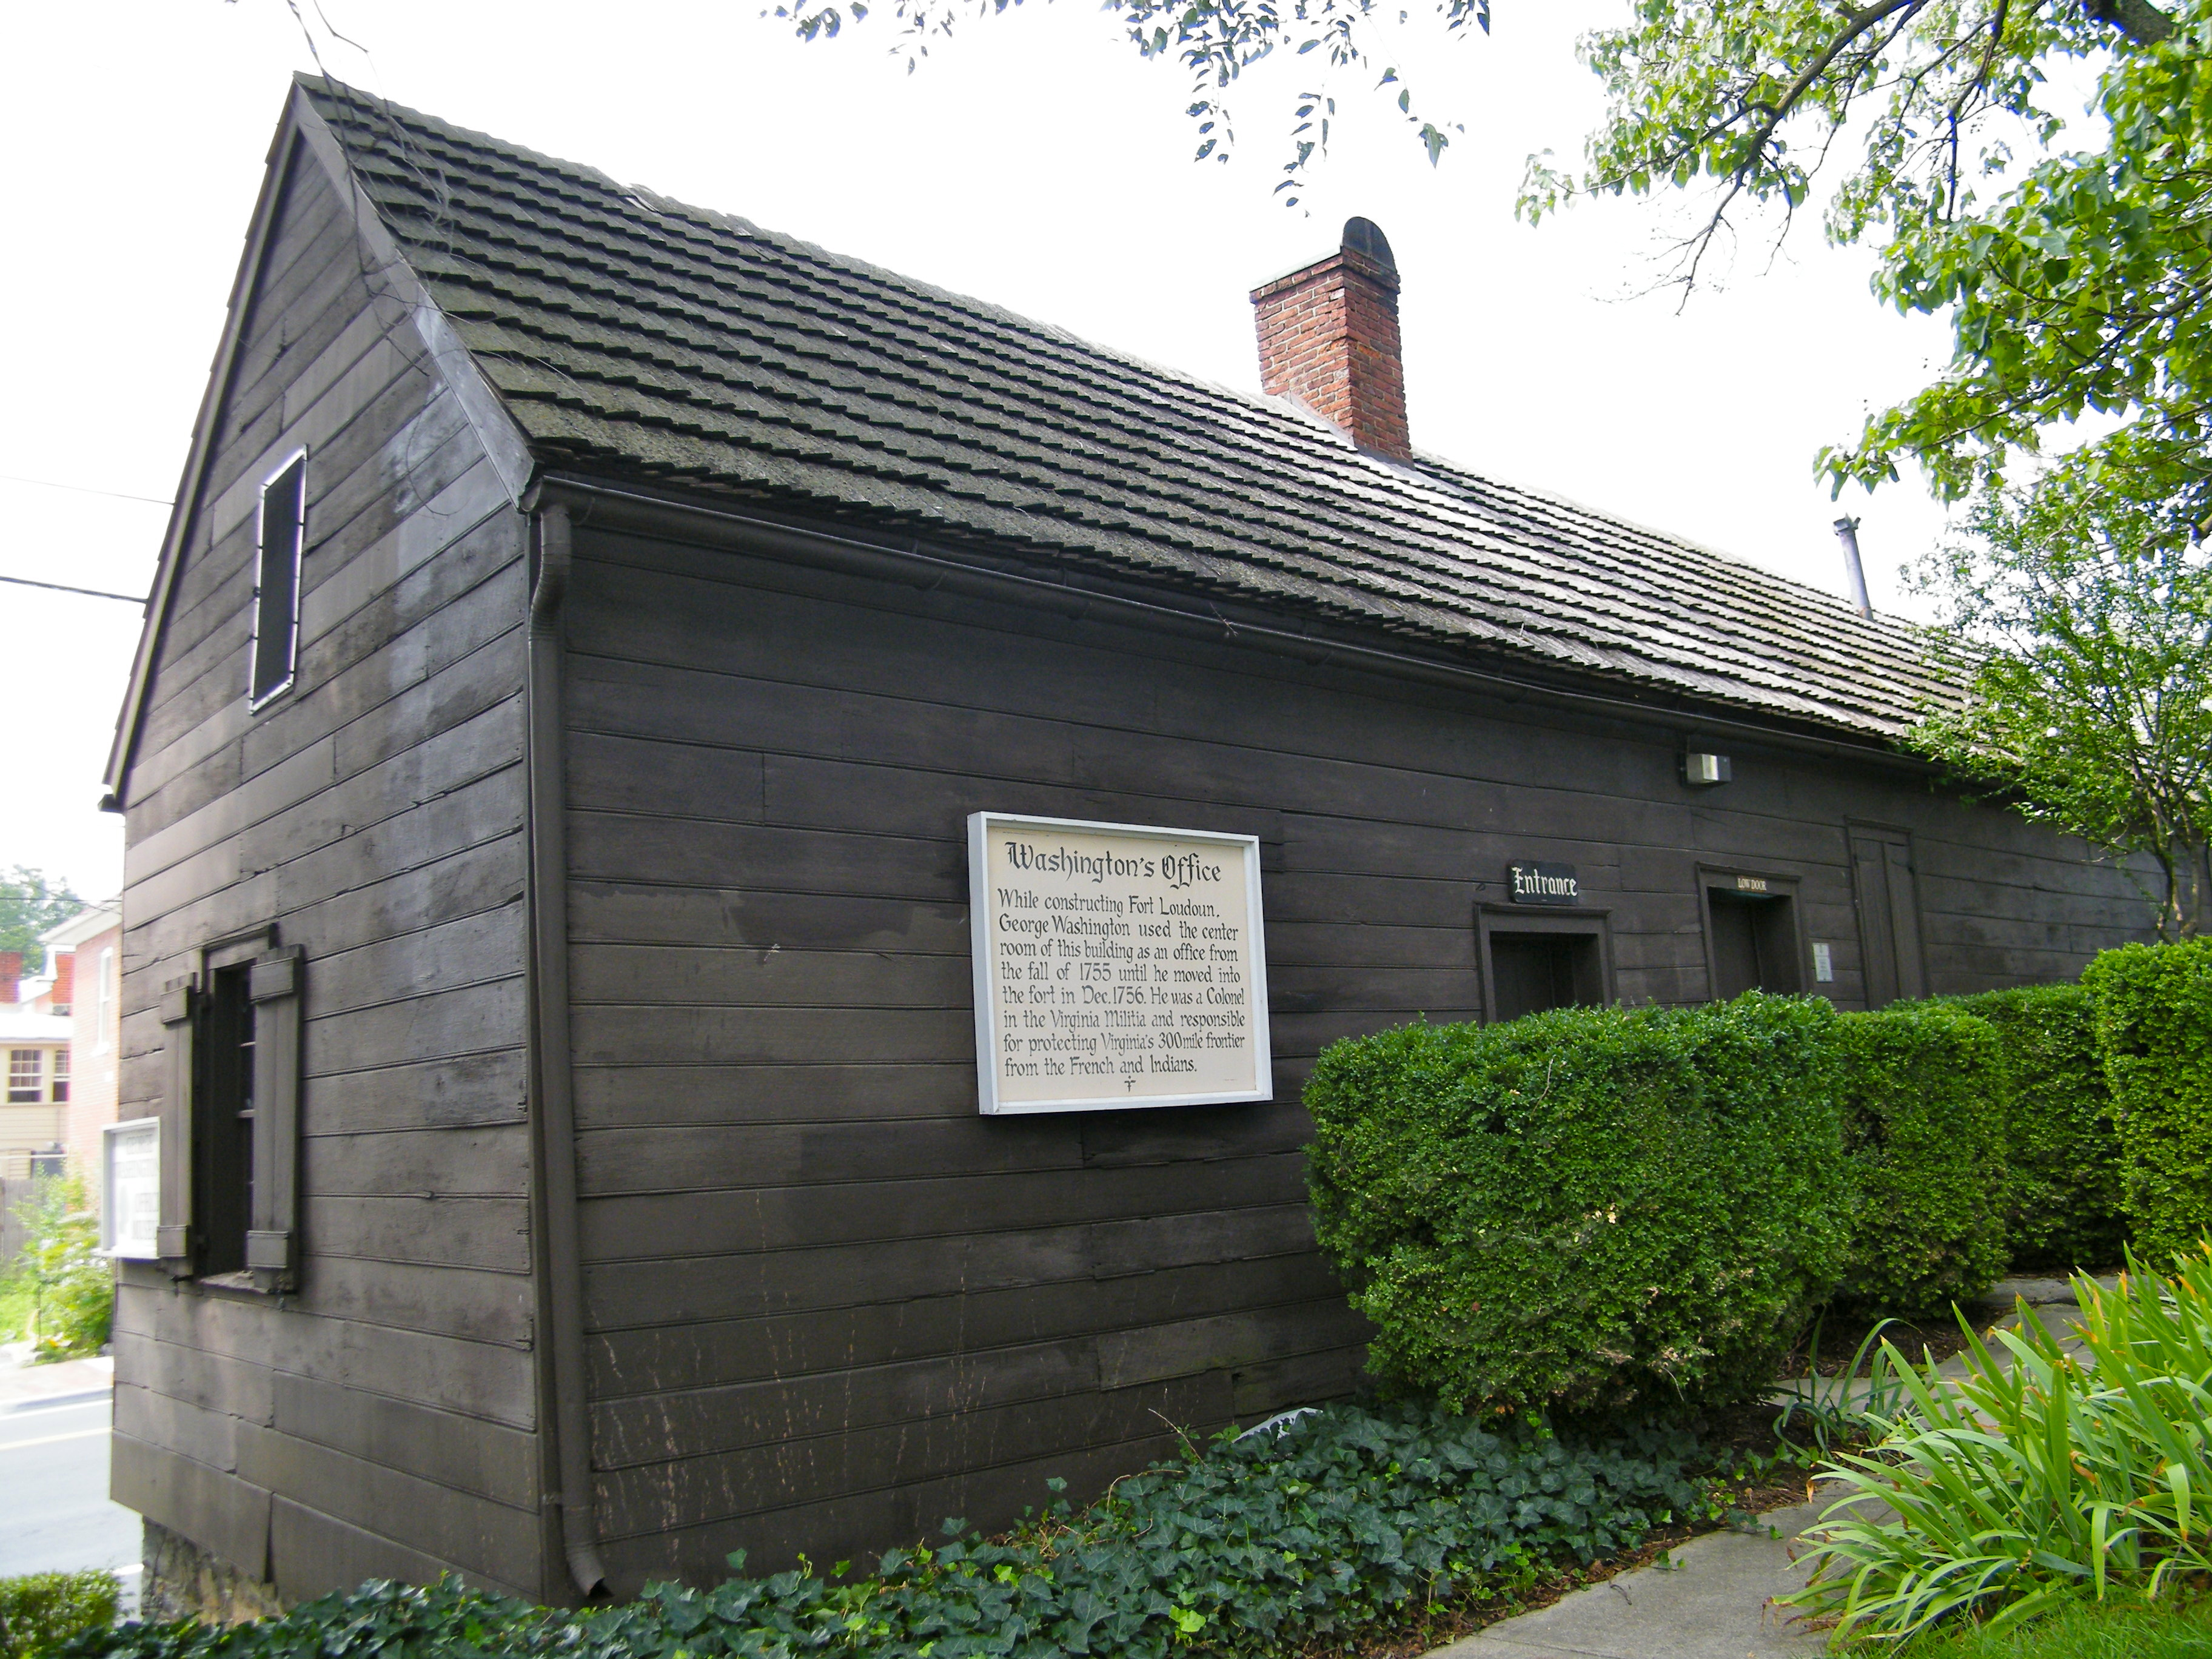 Exterior view of George Washington's Office, Winchester, Virginia. Image by Sarah Stierch - Own work, CC BY 4.0, https://commons.wikimedia.org/w/index.php?curid=16432238